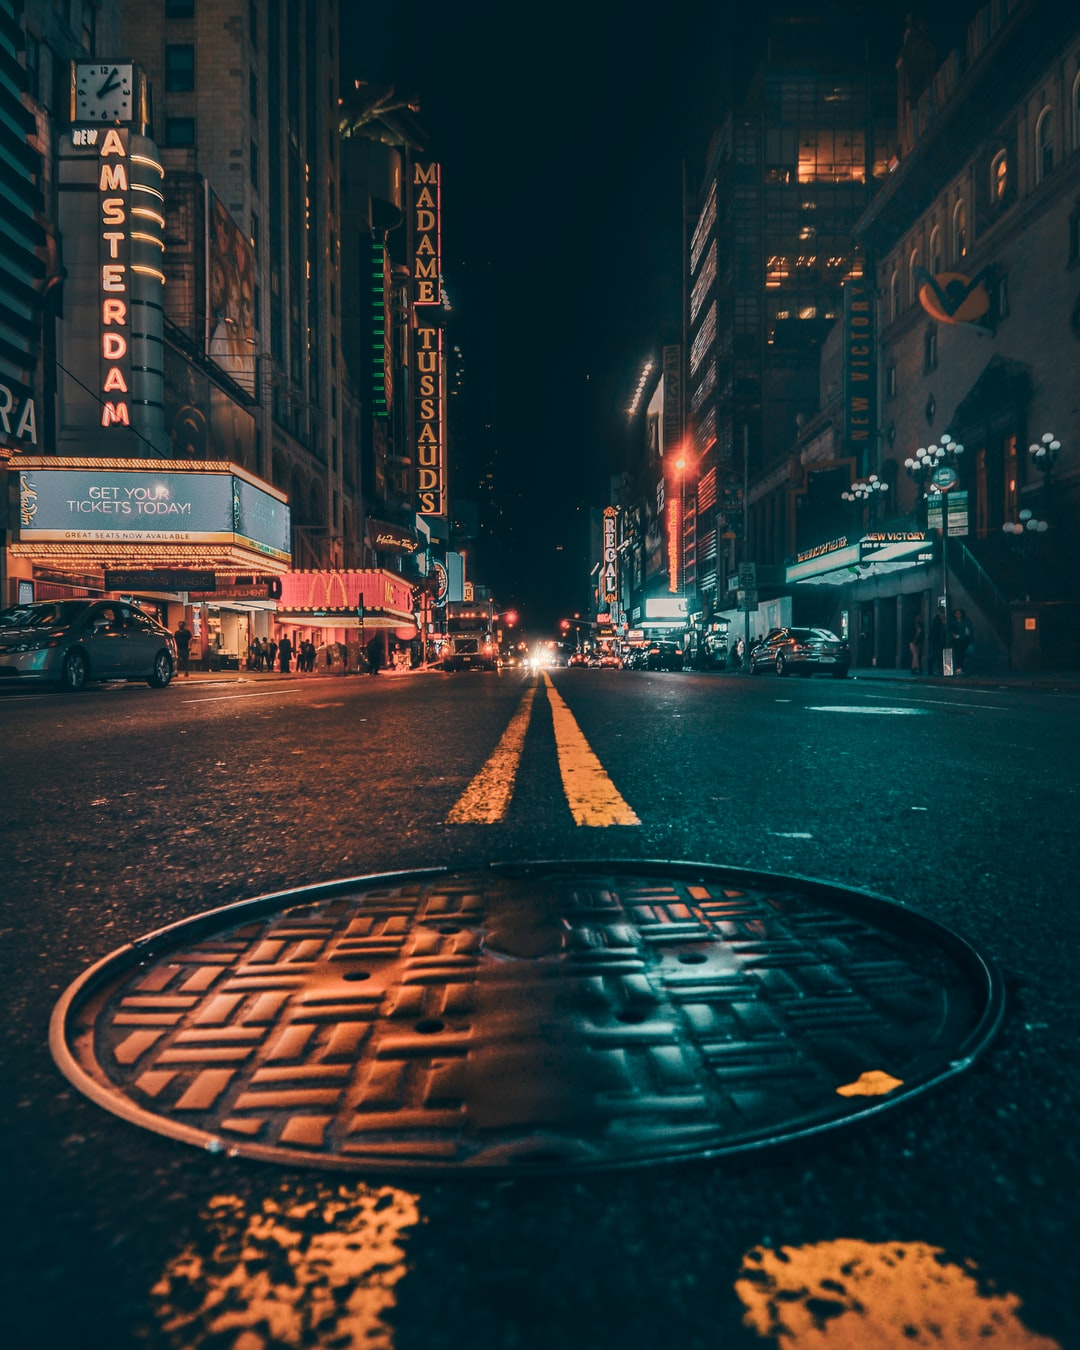 Manhole, Street, Avenue And Pavement HD Photo By Yeshi